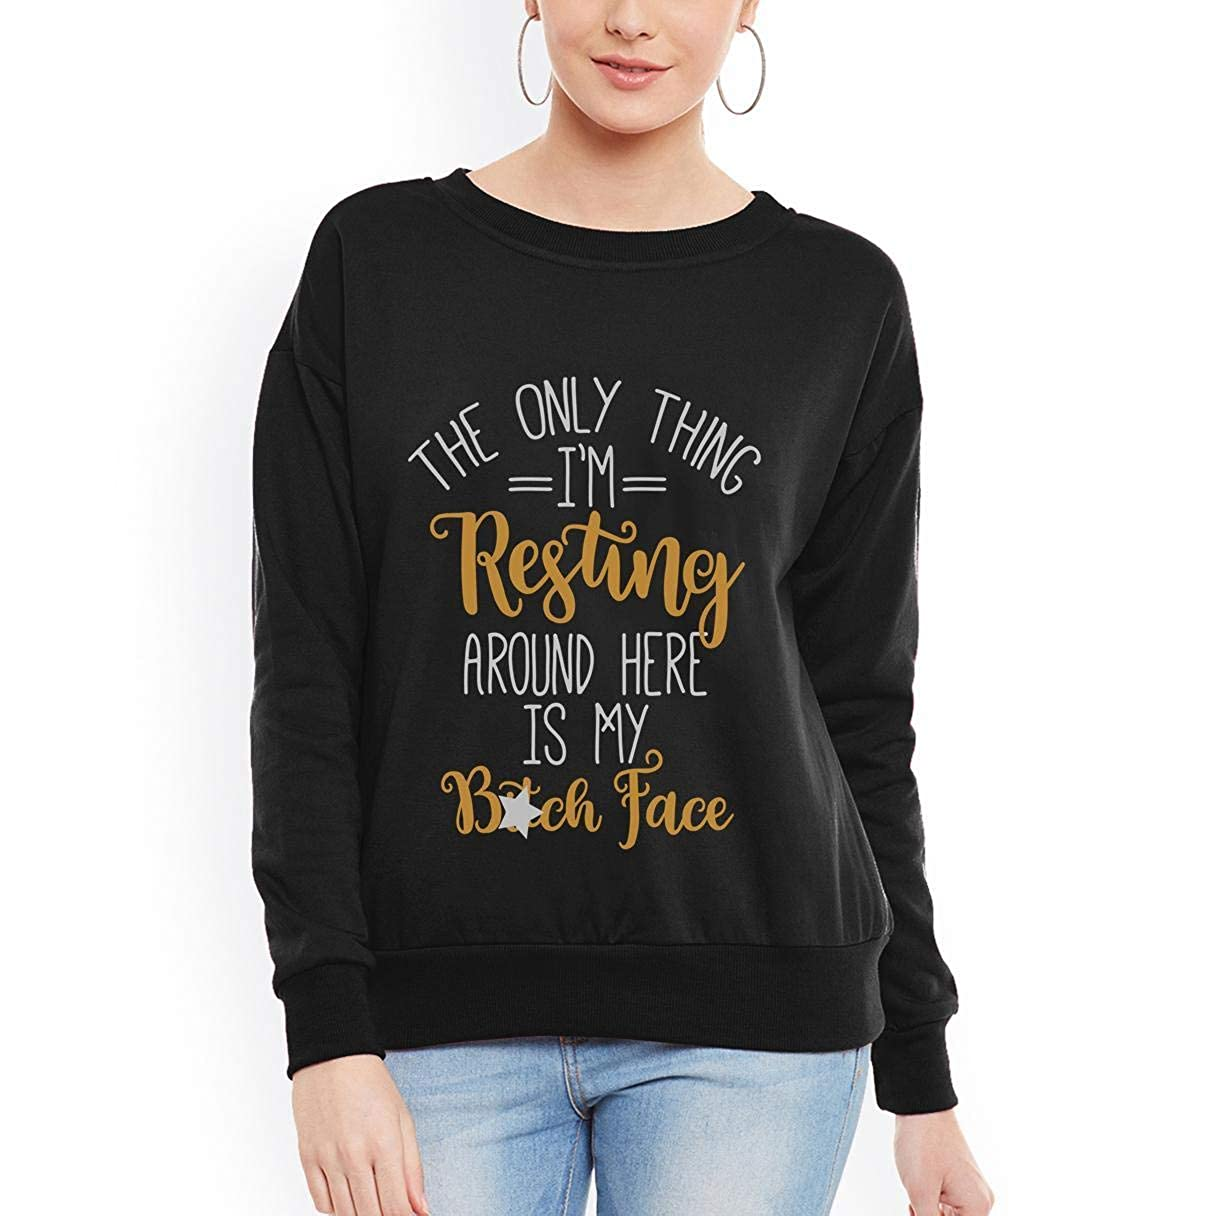 Doryti Im Resting Around here is Btch Face Women Sweatshirt tee